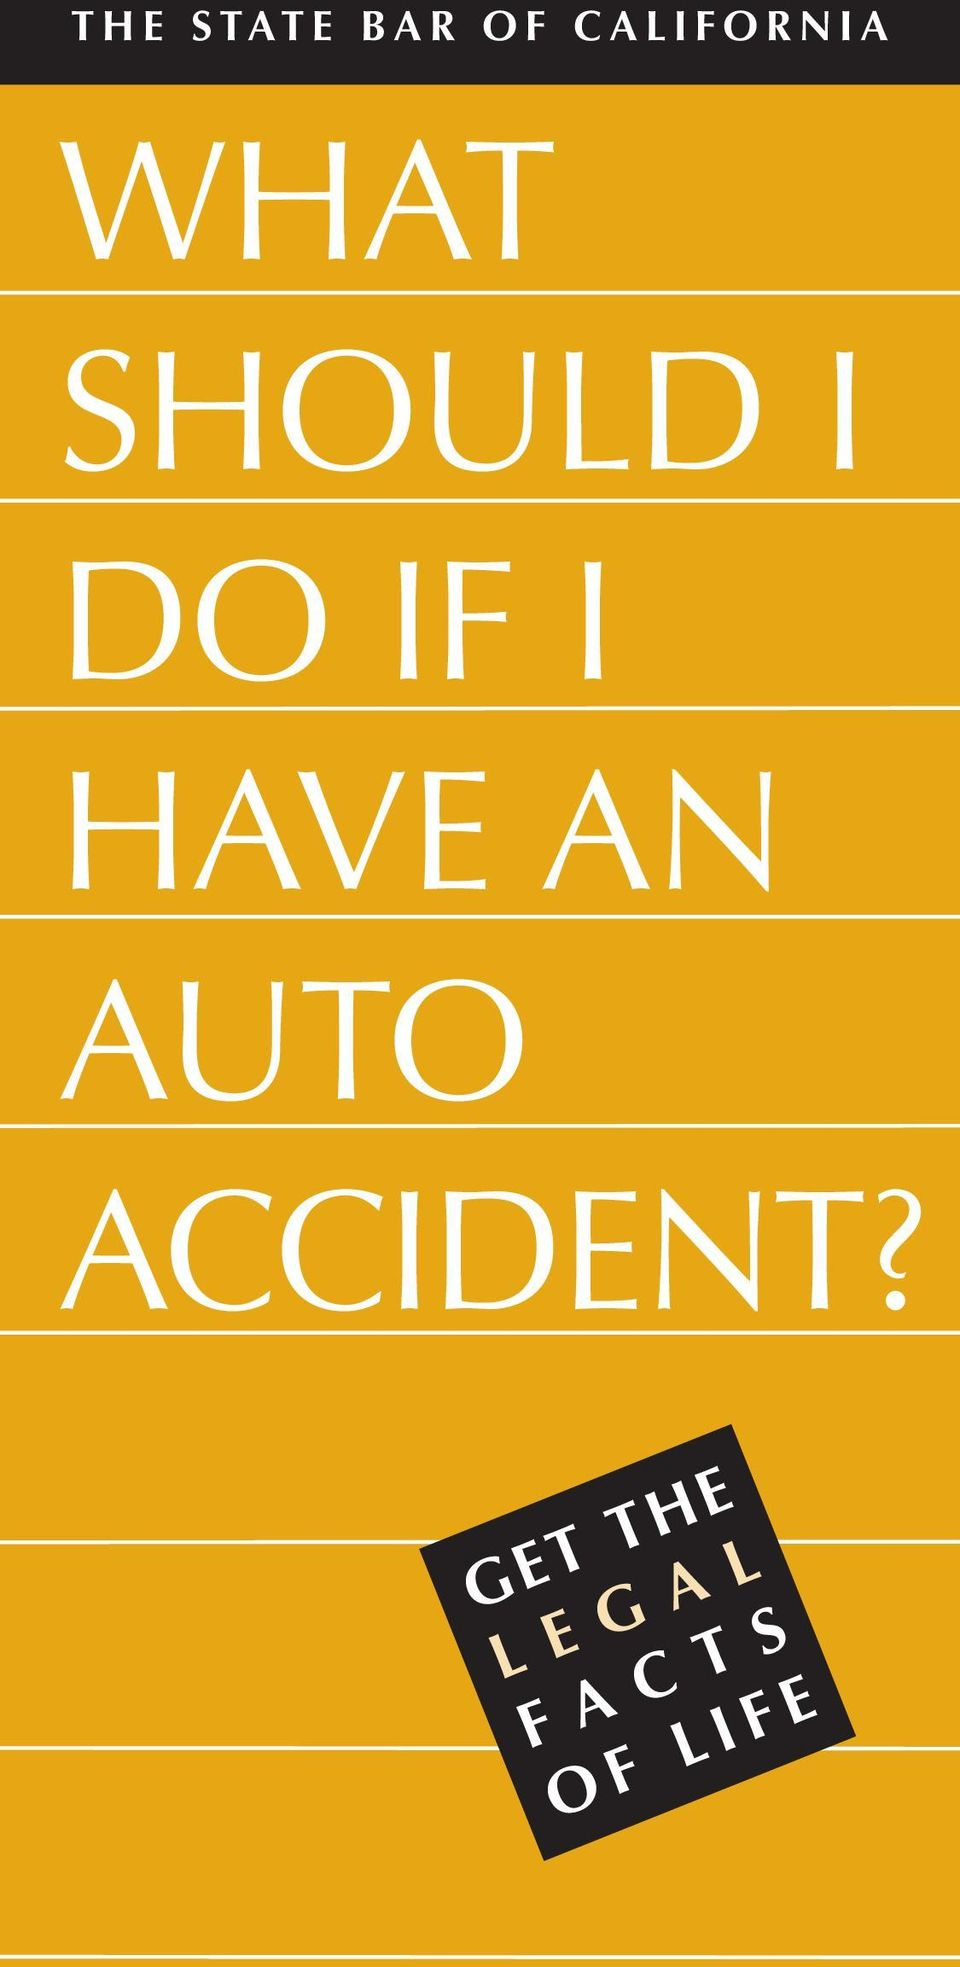 I HAVE AN AUTO ACCIDENT?